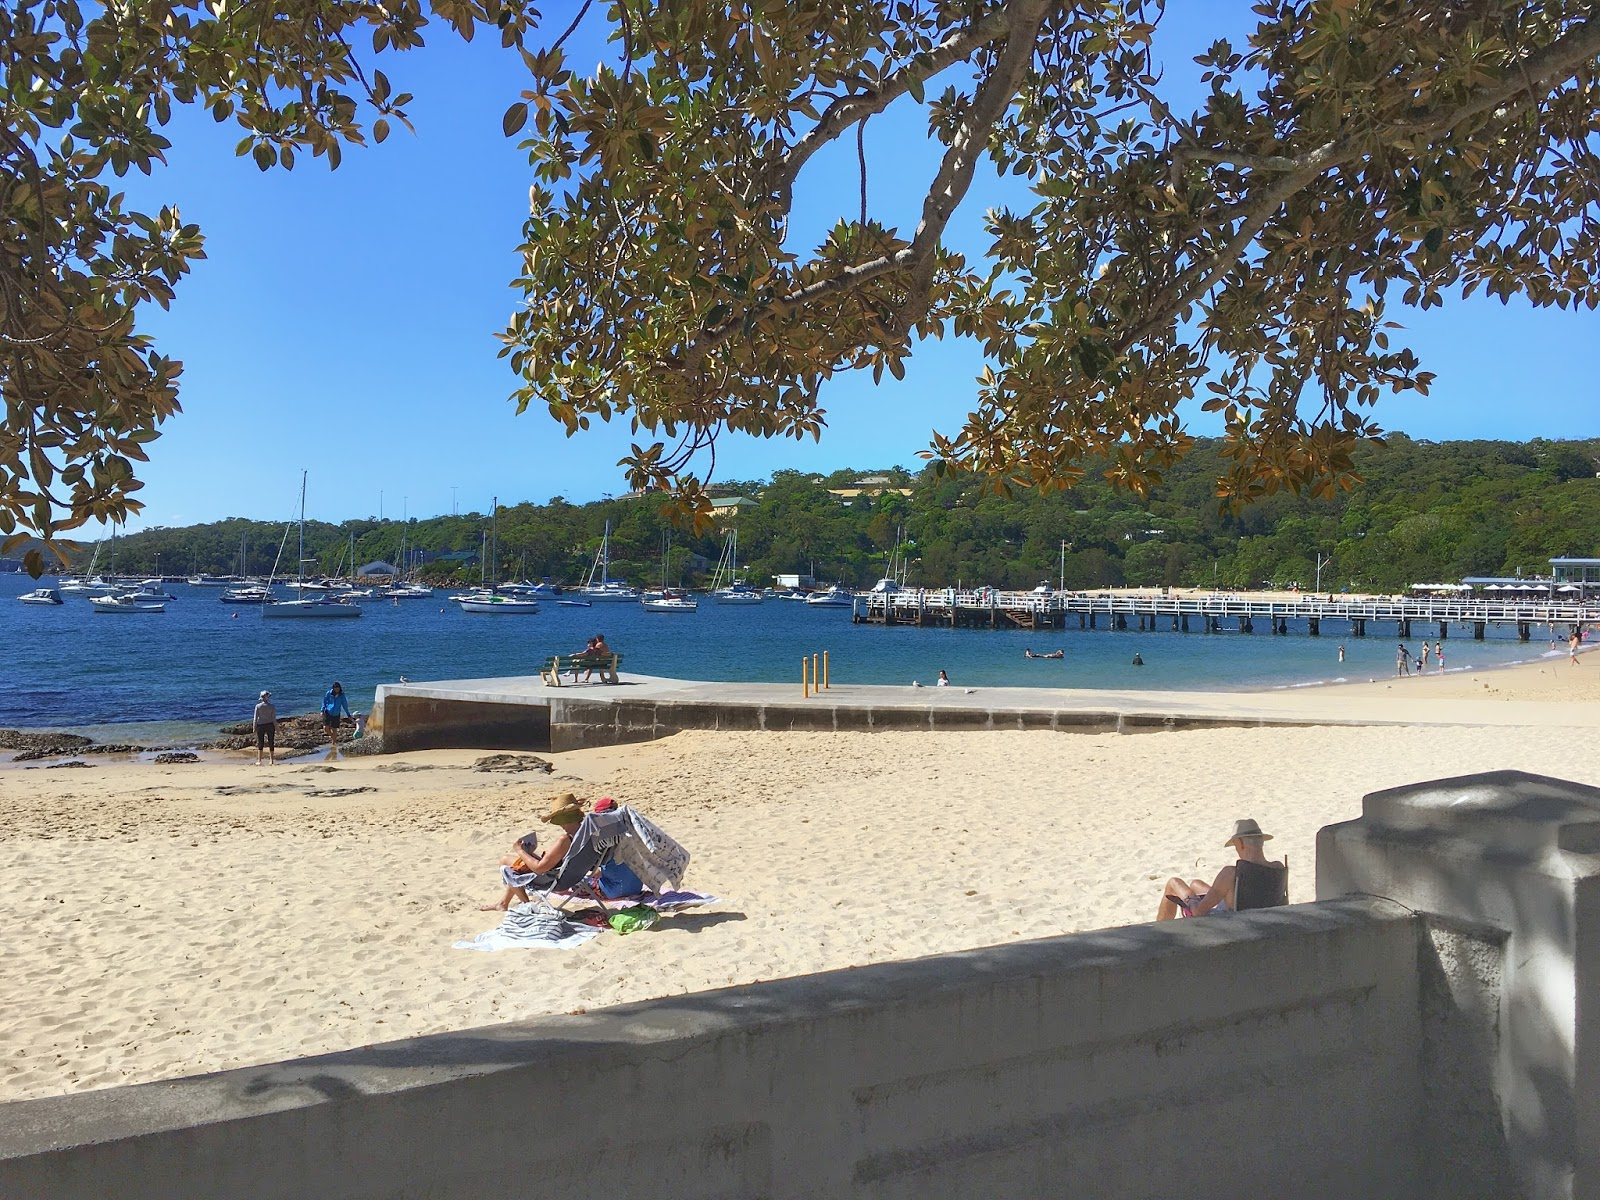 Balmoral Beach to end Taronga to Balmoral Walk